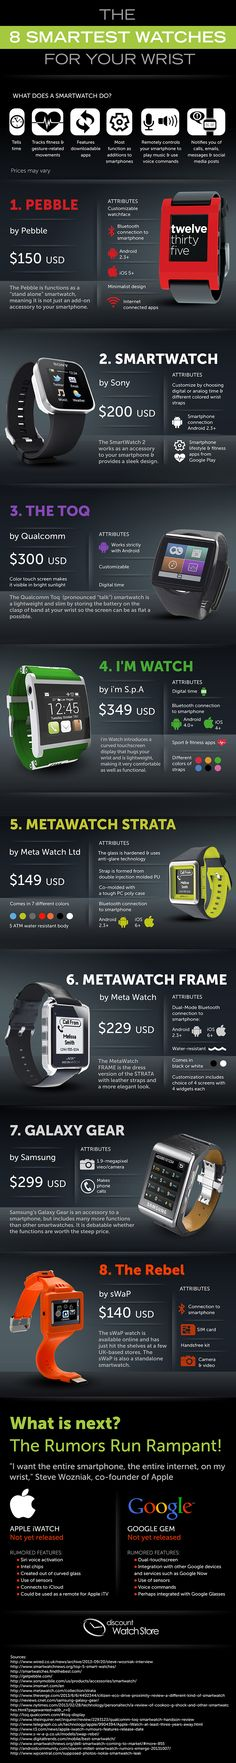 Battle of the Smartwatches  #Technology